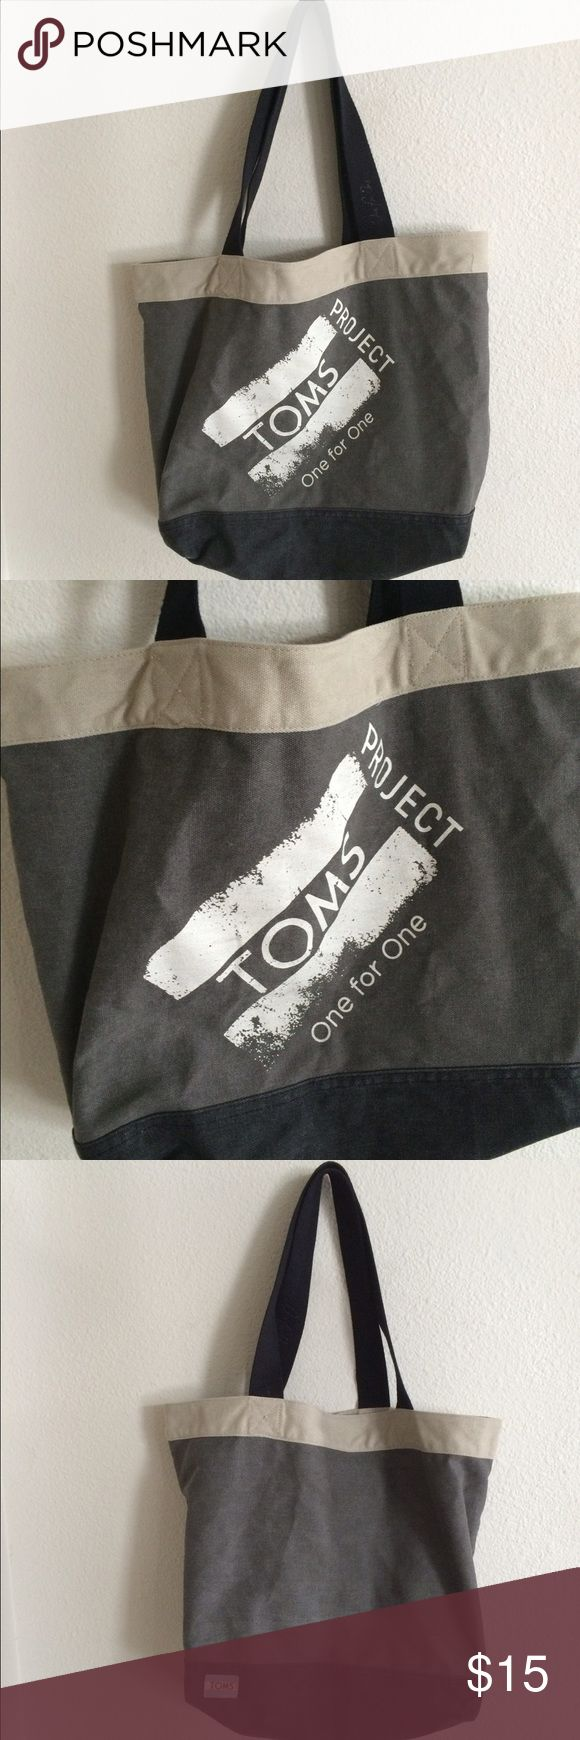 "TOMS gray canvas tote TOMS gray canvas tote bag. Measures 16"" long and 12"" tall. 9"" handle drop. Very good used condition.  🚫NO TRADES🚫 💲Reasonable offers accepted💲 💰Great bundle discounts💰 TOMS Bags Totes"